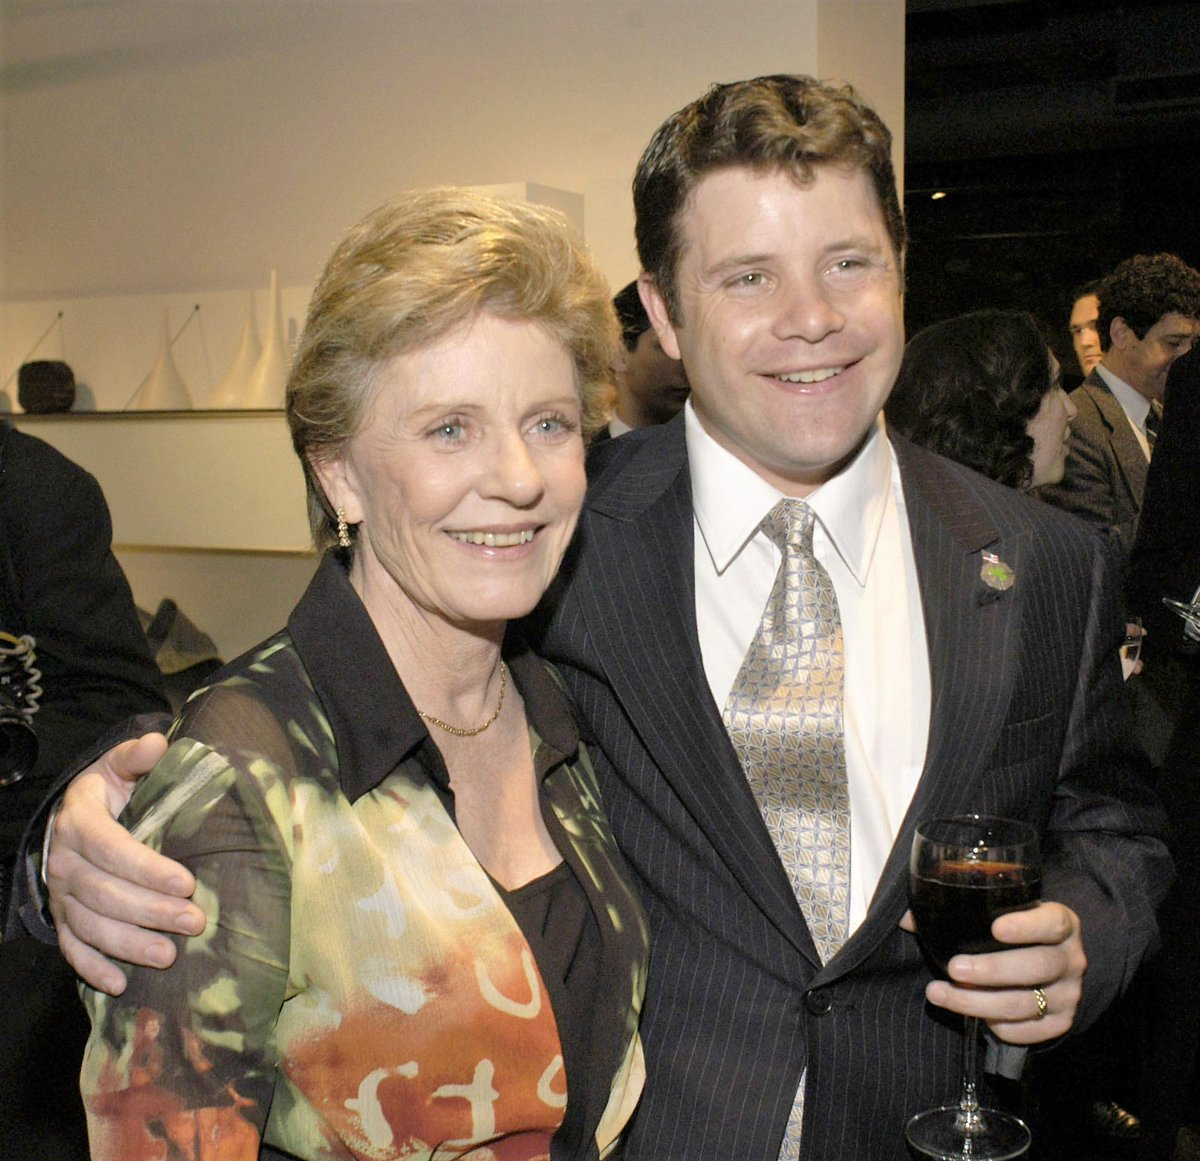 RIP, #PattyDuke, #Oscar winning actress(#TheMiracleWorker) & the mom of #SeanAstin, #SamGamgee in #lotr. She was 69. https://t.co/EWmThMmiay